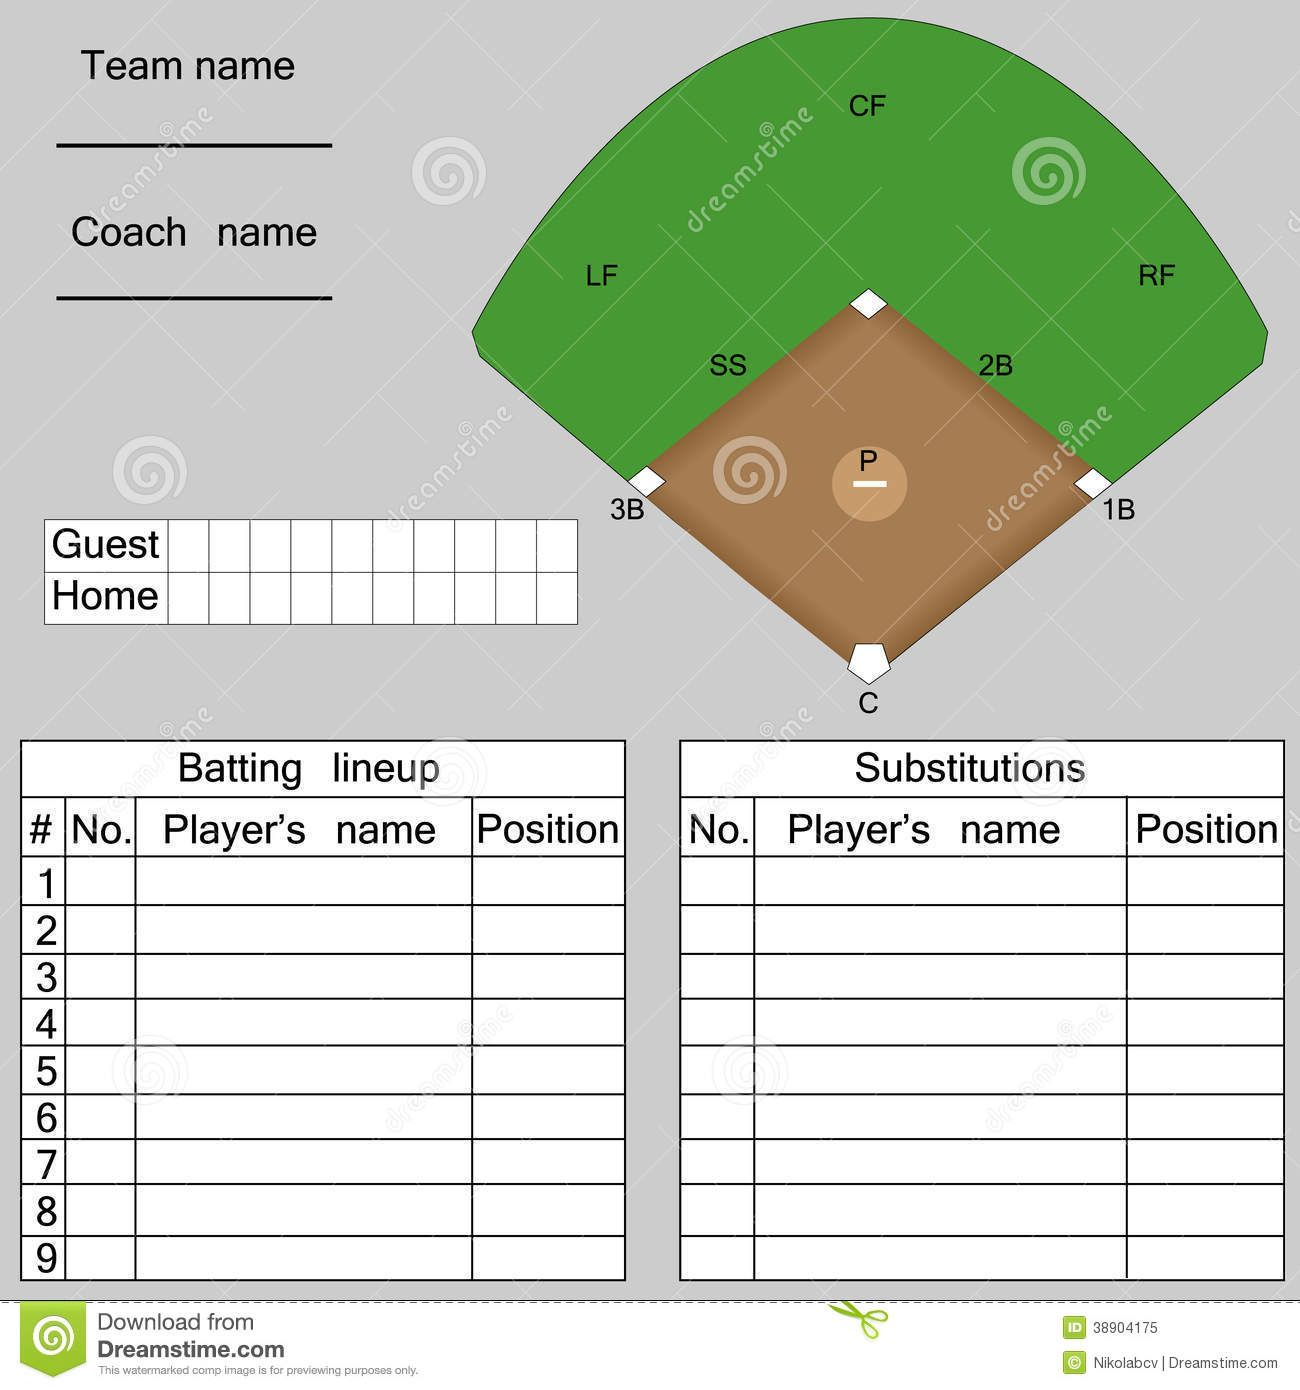 Image Result For Youth BaseballLineup  Team Mom